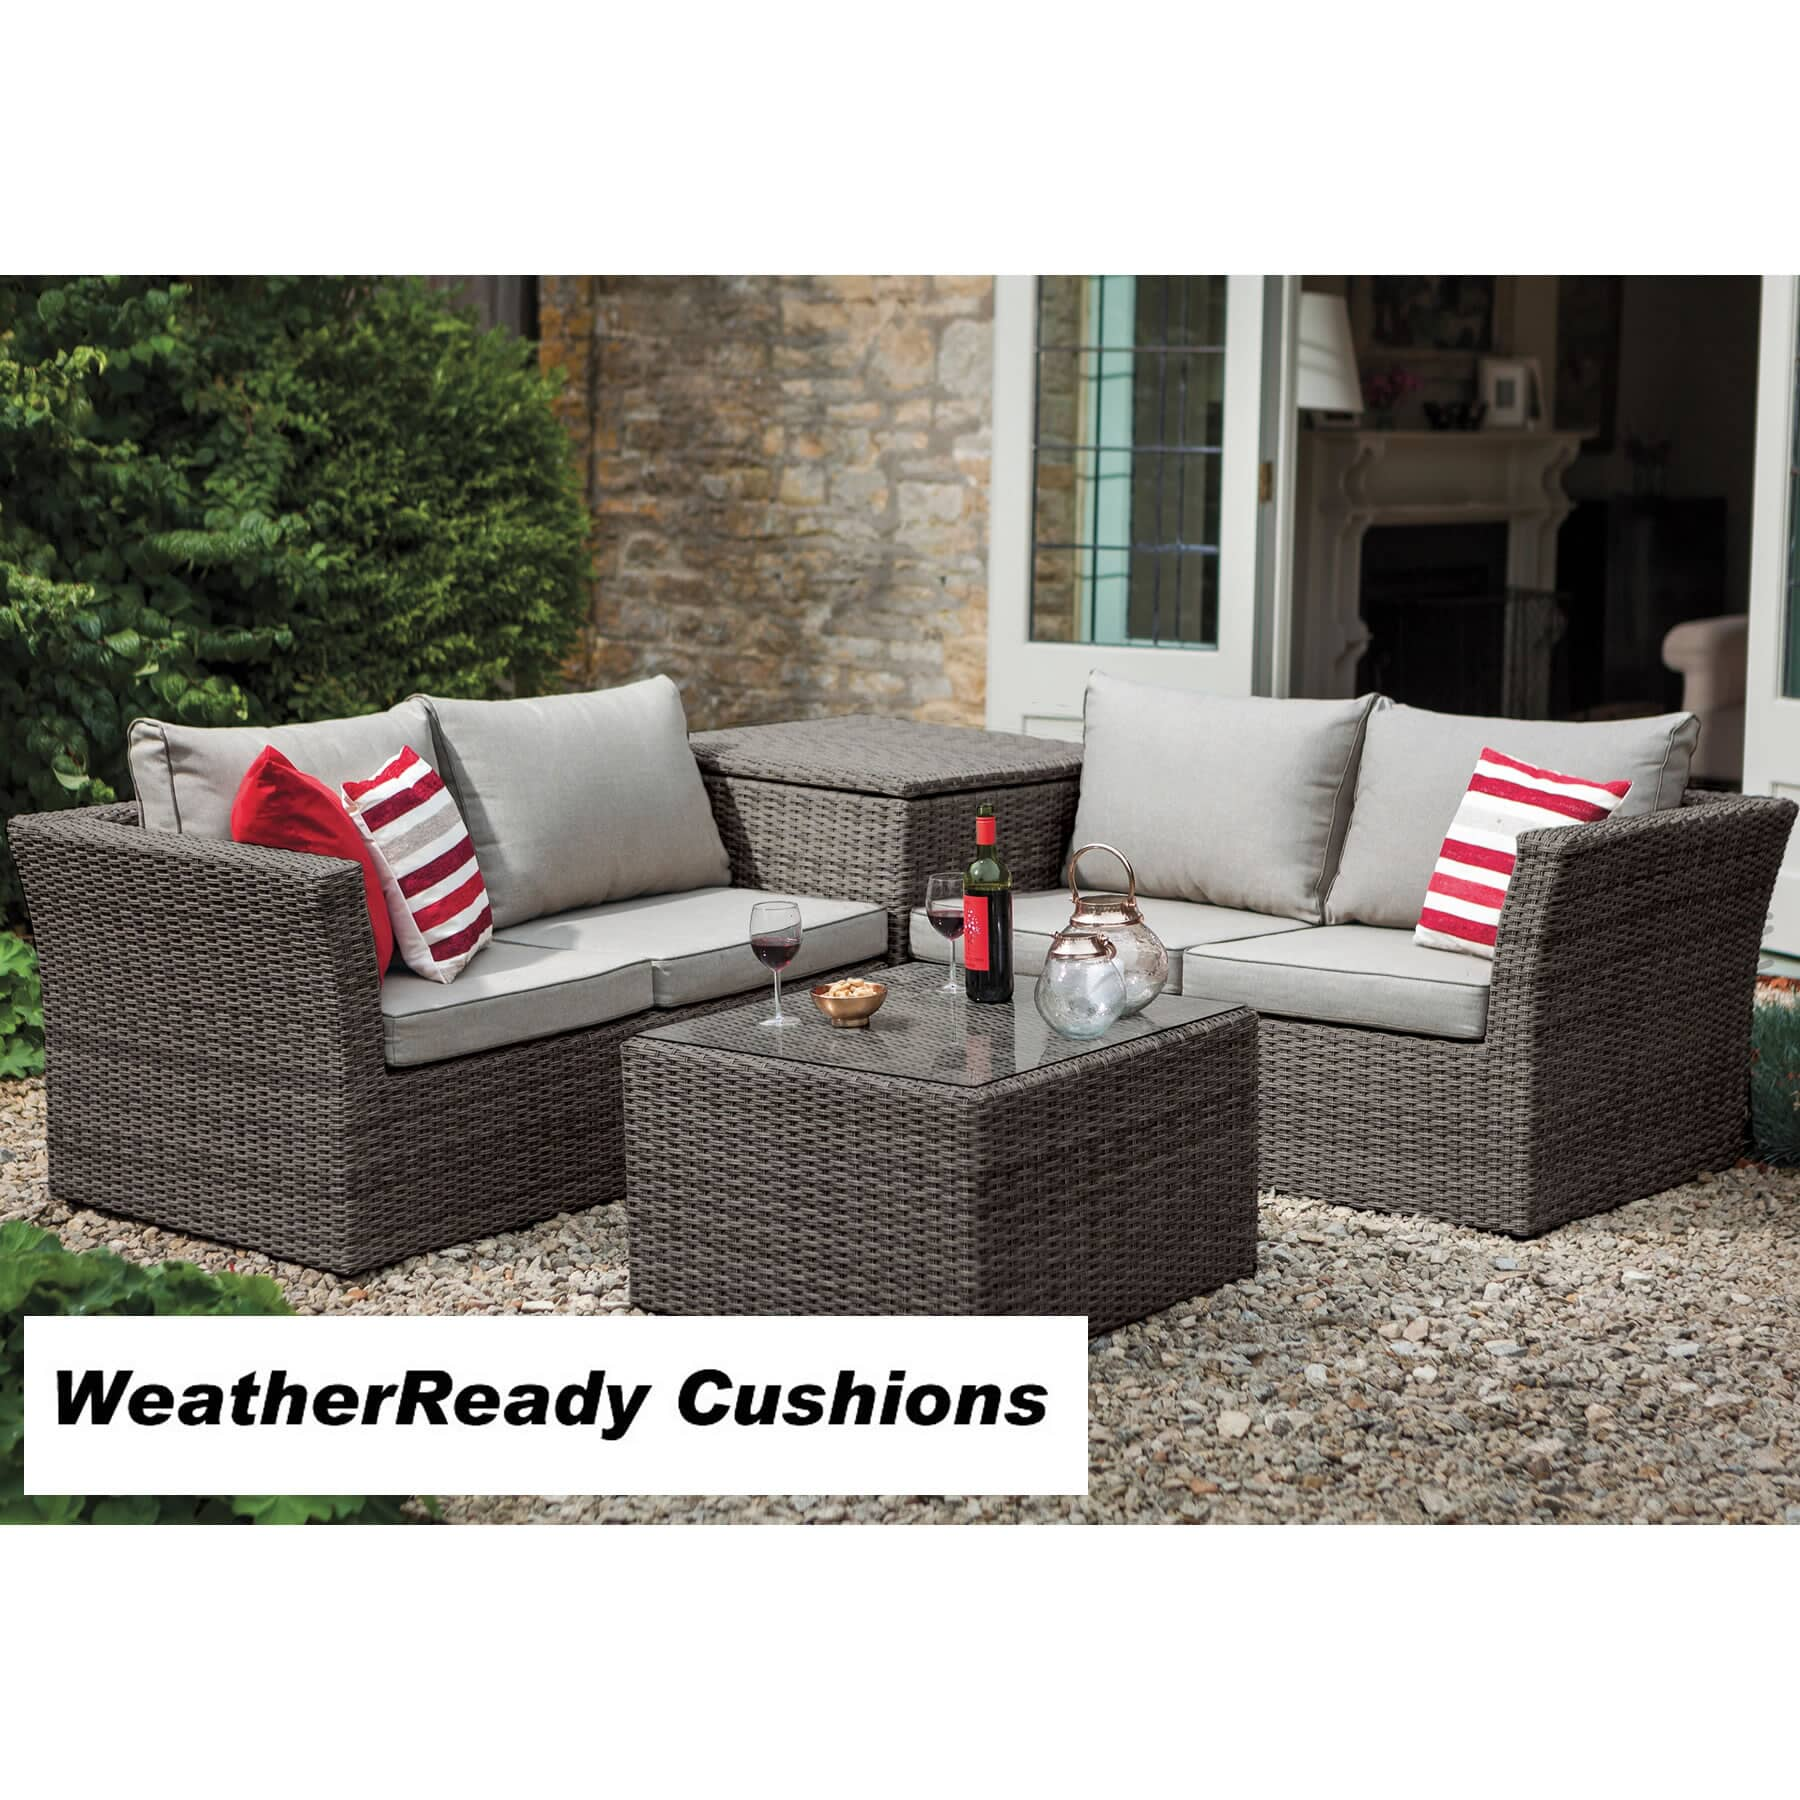 Better Homes And Gardens Replacement Cushions Azalea Ridge, Hartman Appleton Essential Cushion Storage Table Corner Set Weatheready Cushions Slate Stone Appset18ss12 Garden Furniture World